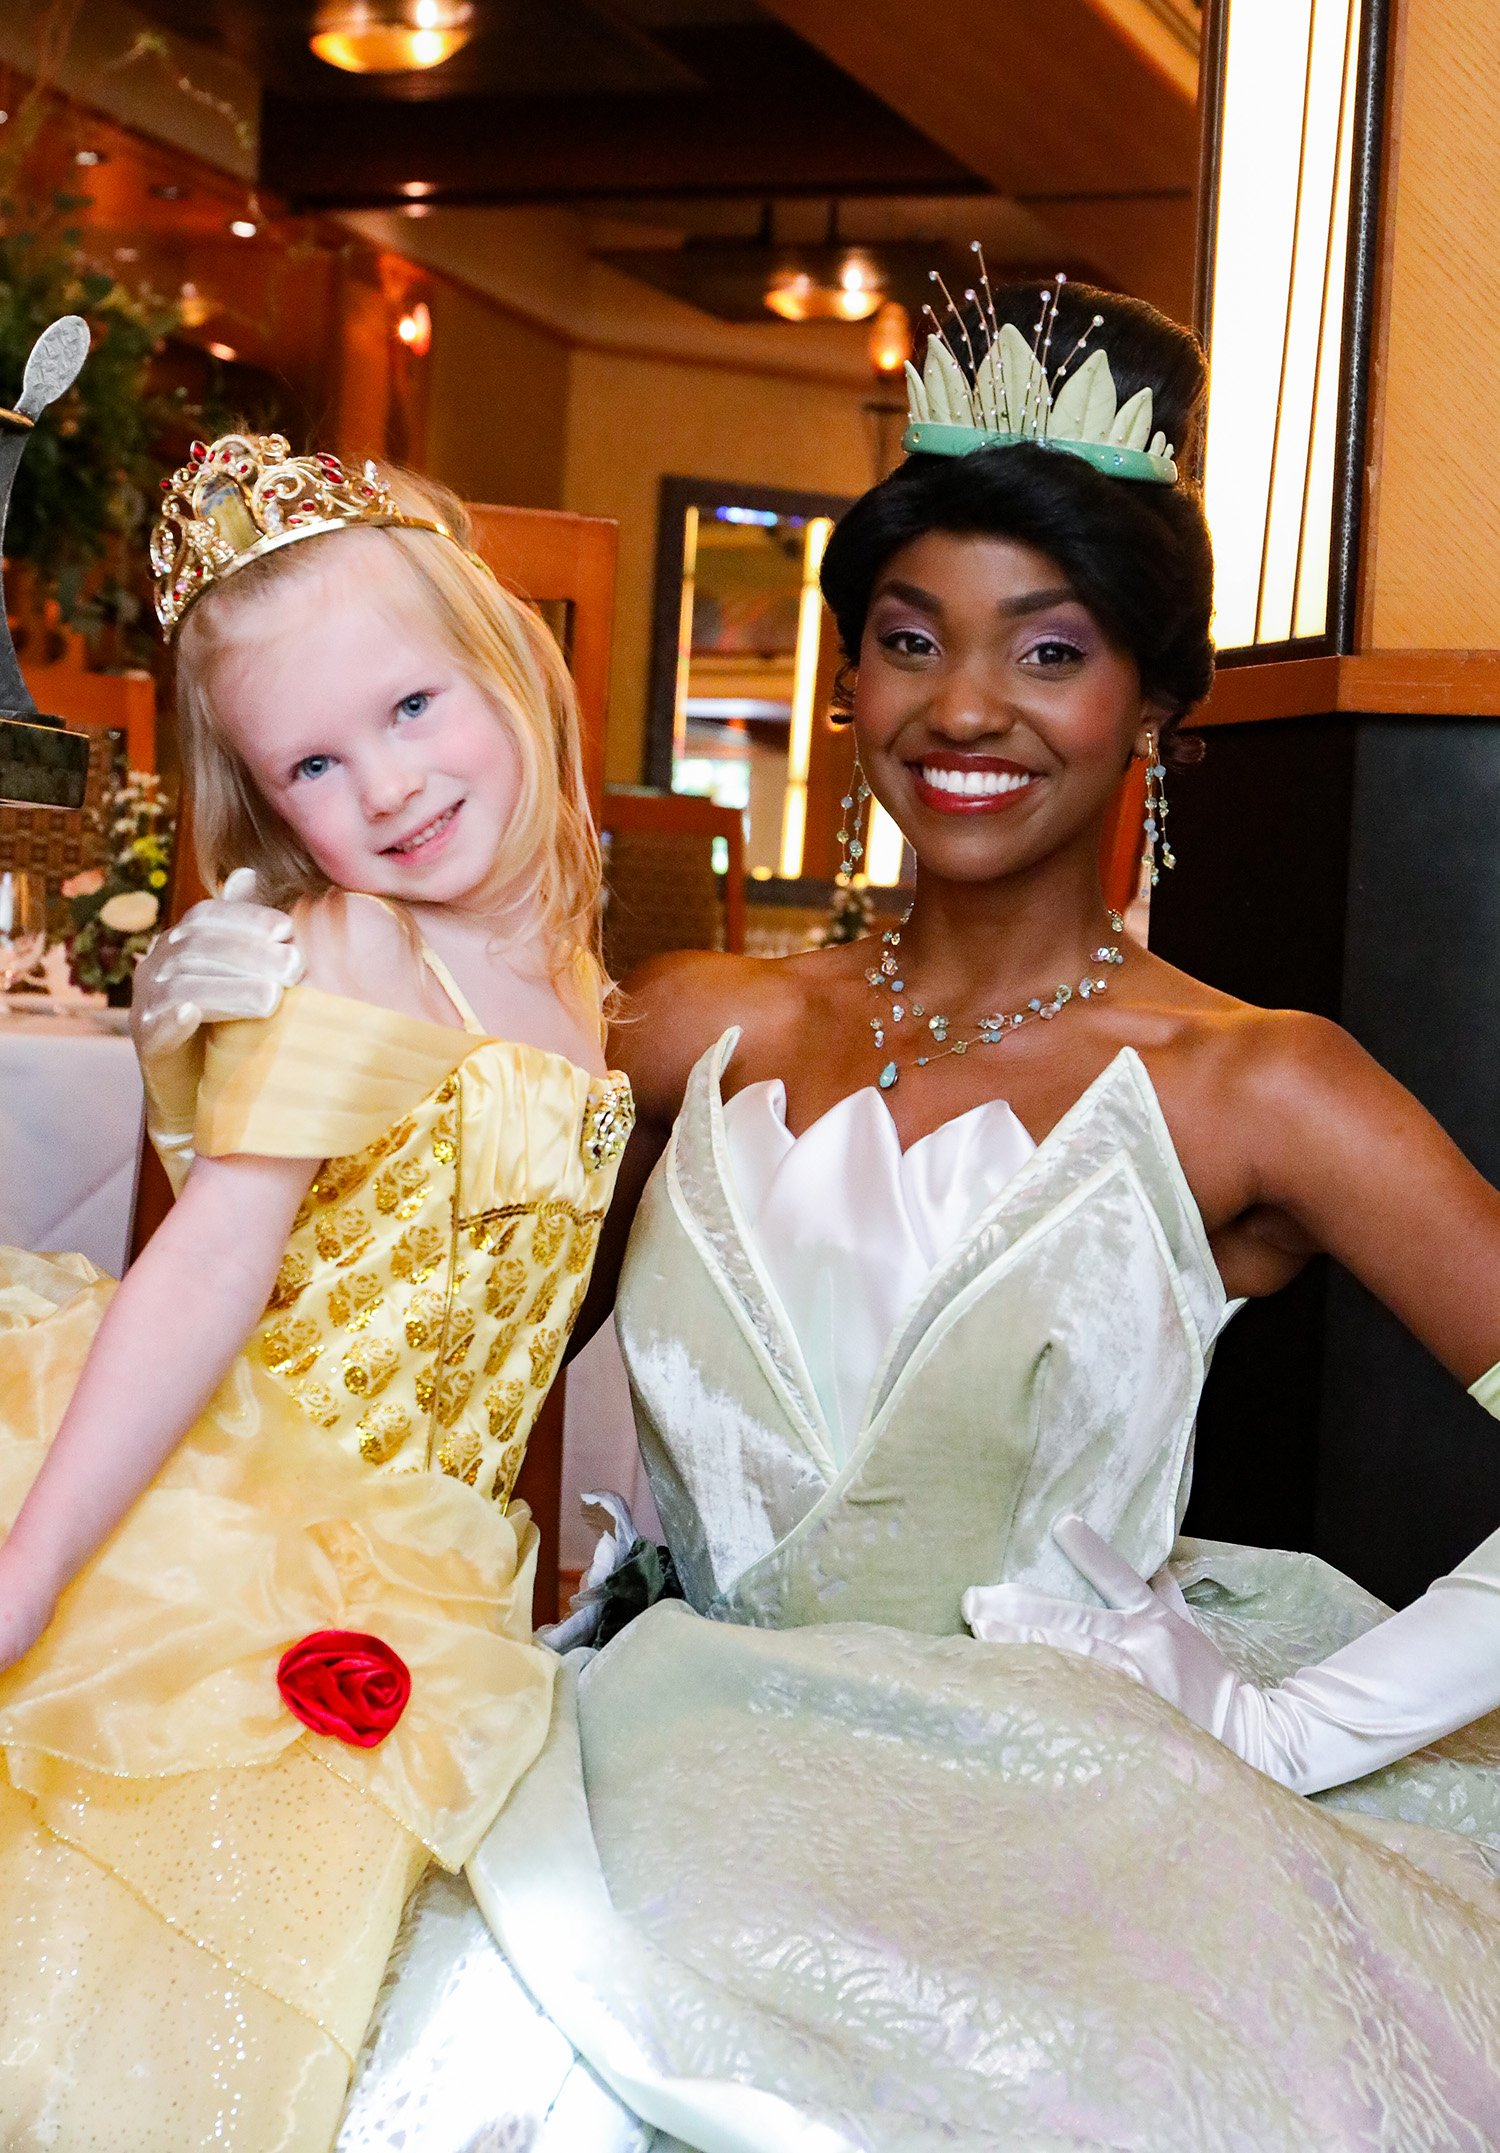 Looking for the best place to meet princesses at Disneyland? This is the ultimate guide to the Disneyland Princess Breakfast Adventures at Napa Rose.